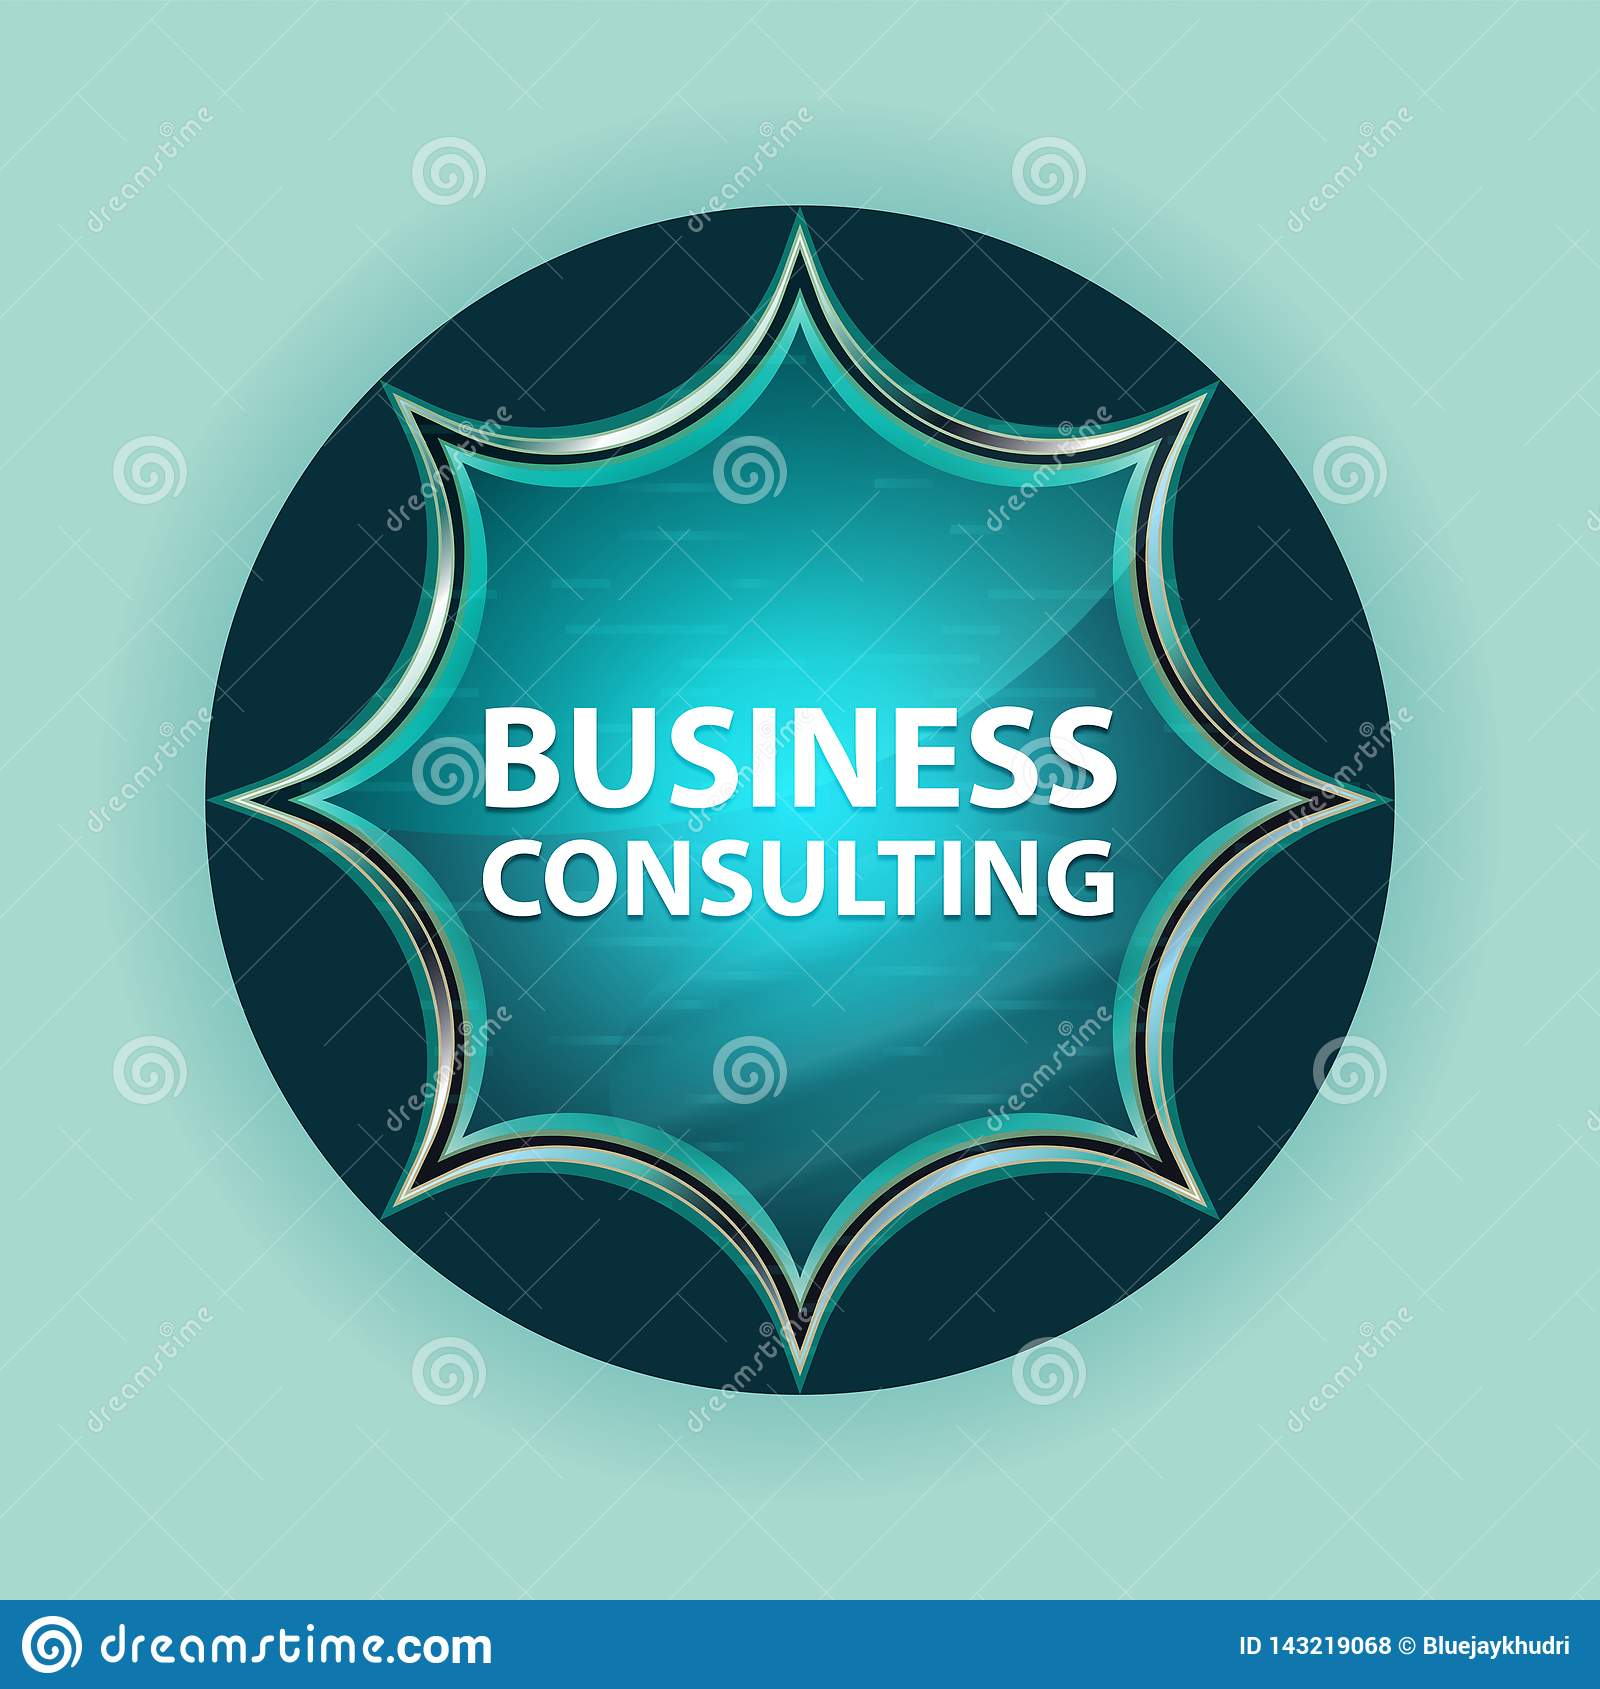 Business Consulting magical glassy sunburst blue button sky blue background